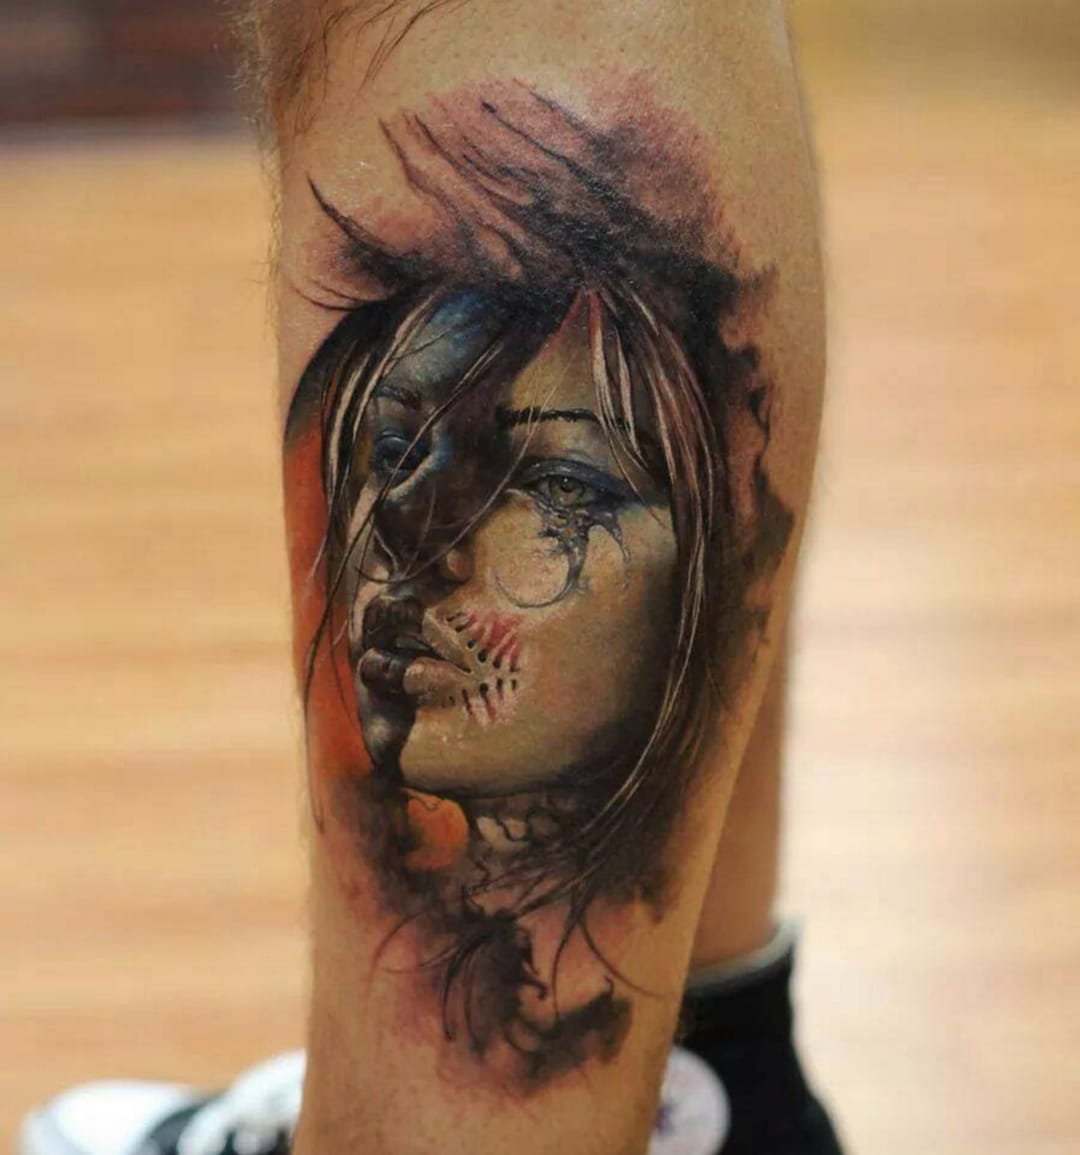 Scary portrait tattoo by Dmitry Vision, source: Facebook / Best European Tattoo Artist's